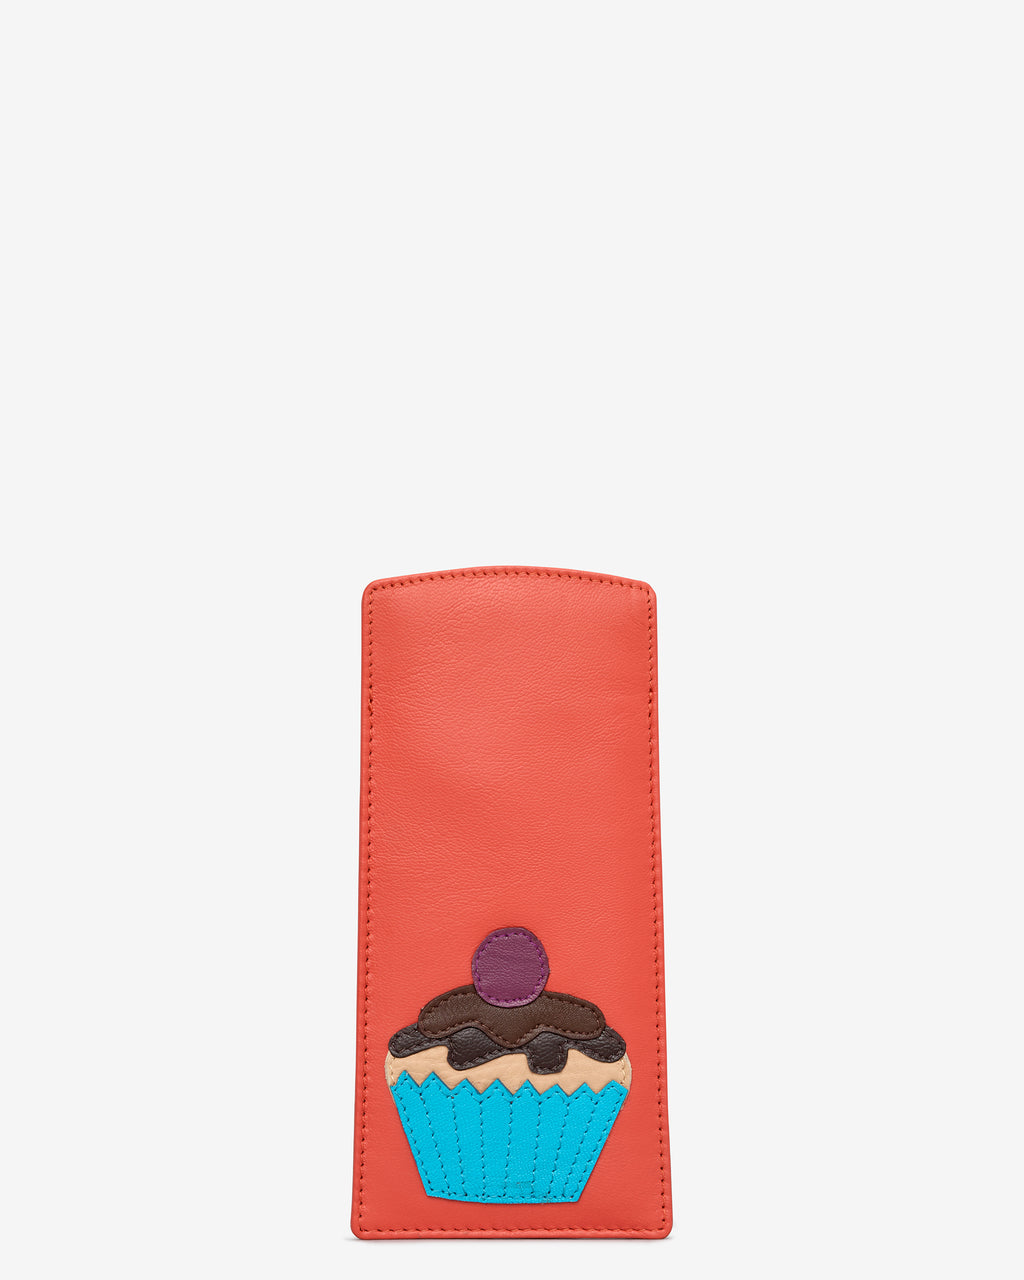 Y By Yoshi Cupcake Leather Glasses Case